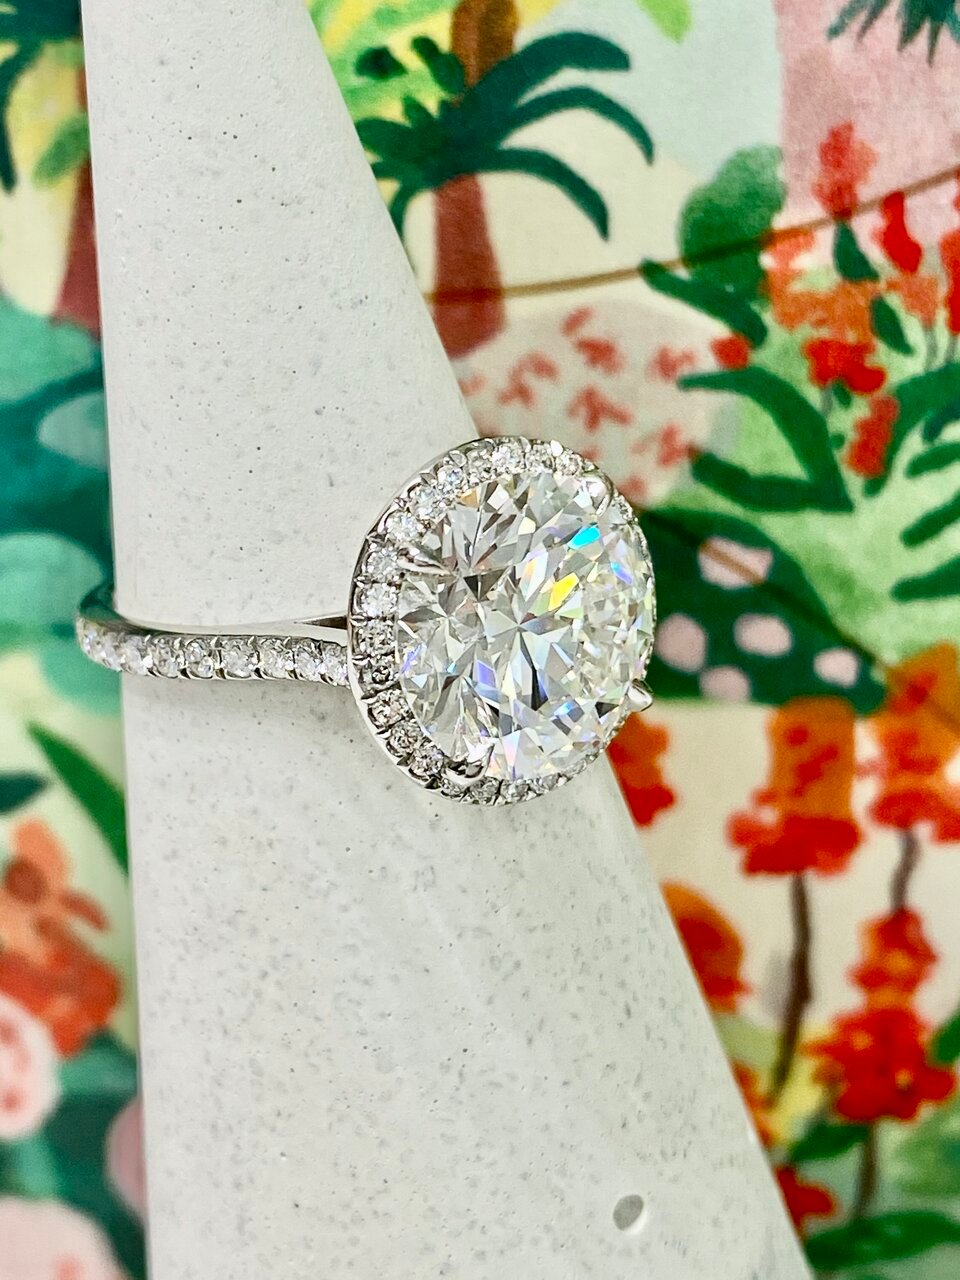 On a ring stand with a brightly floral backdrop, a custom cut 5ct Whiteflash ACA diamond ring is displayed.